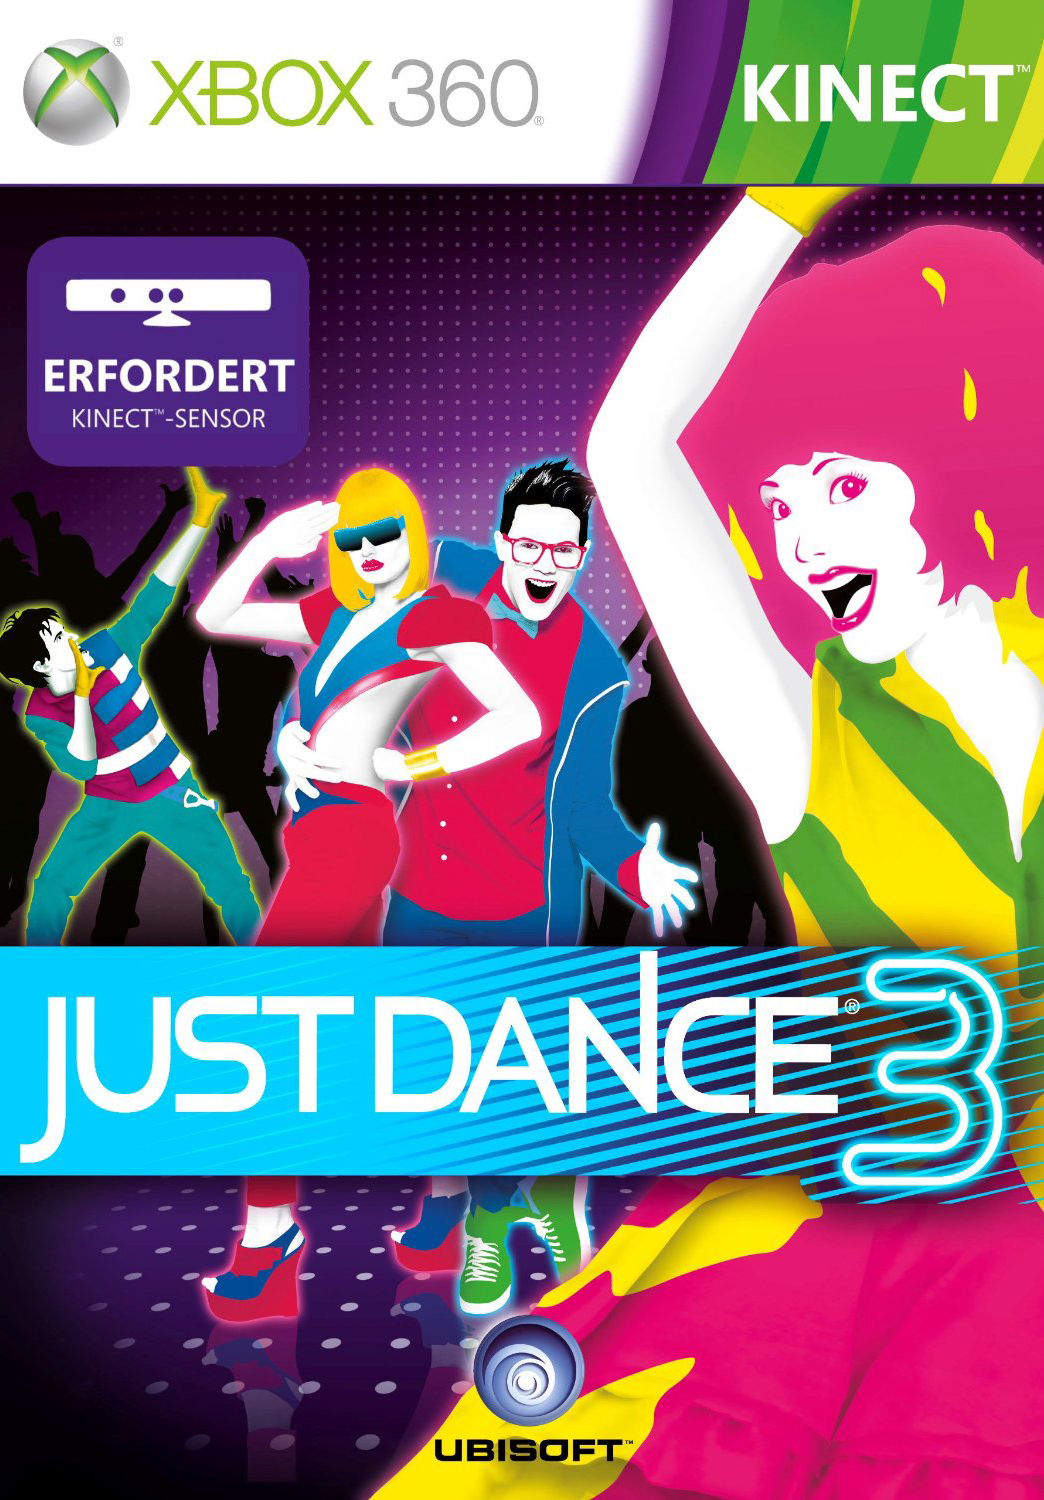 https://img.webme.com/pic/x/xbox360team/justdance3.jpg